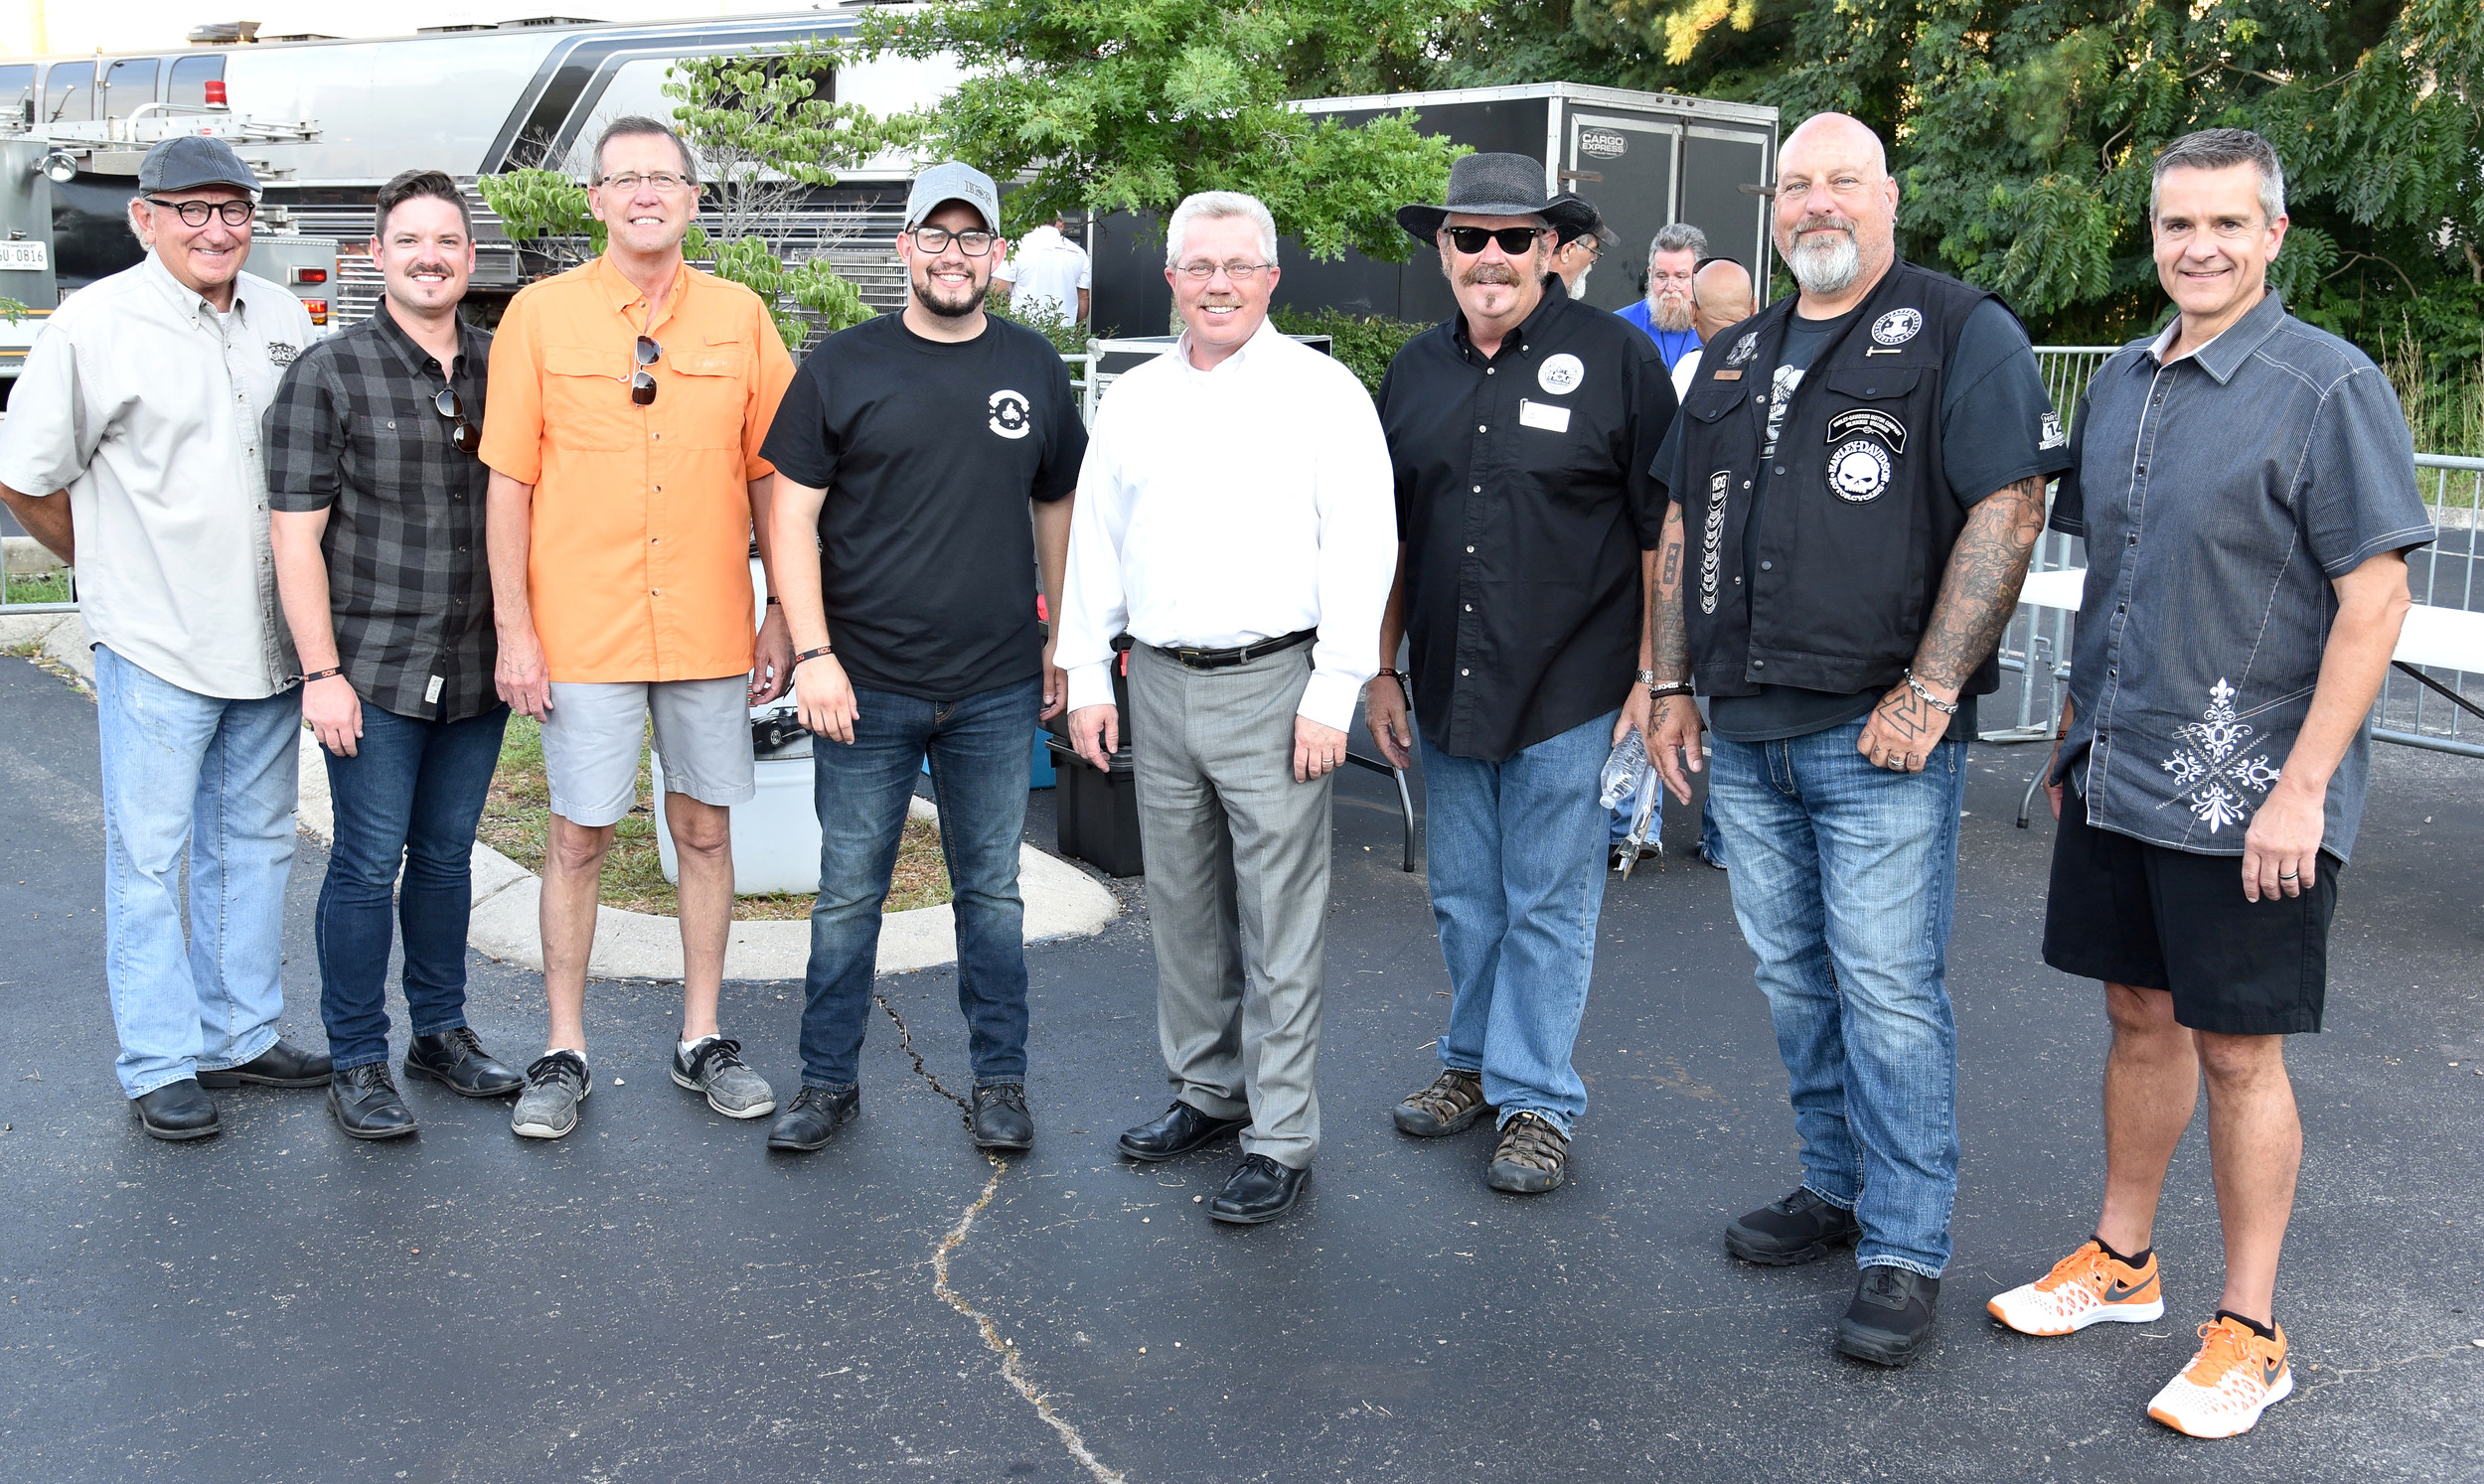 Cookeville Welcomes Southern Backroads H.o.g Rally Inside Putnam Co Schools Cookeville Tn Calendar